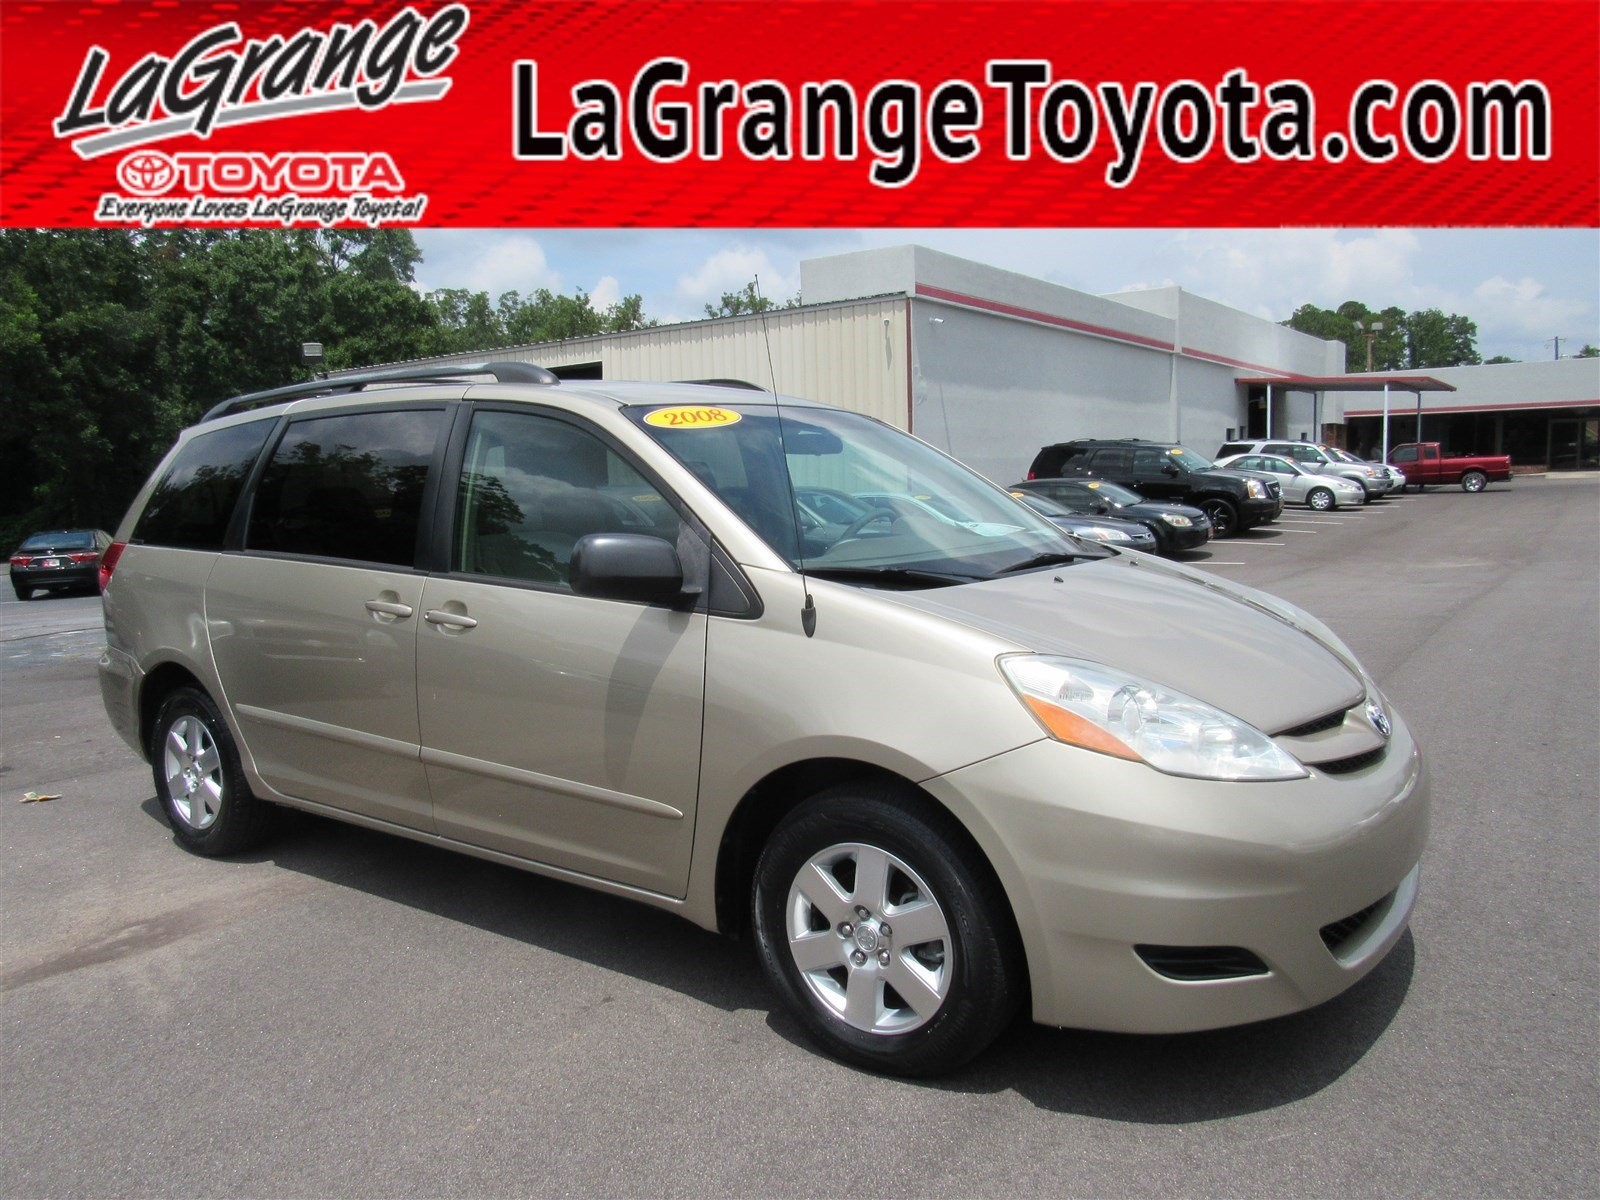 2004 toyota Sienna Parts Diagram Pre Owned 2008 toyota Sienna 5dr Cargo Van Ce Fwd Minivan Van In Of 2004 toyota Sienna Parts Diagram New 2018 toyota Sienna Le 4d Passenger Van In Naperville T